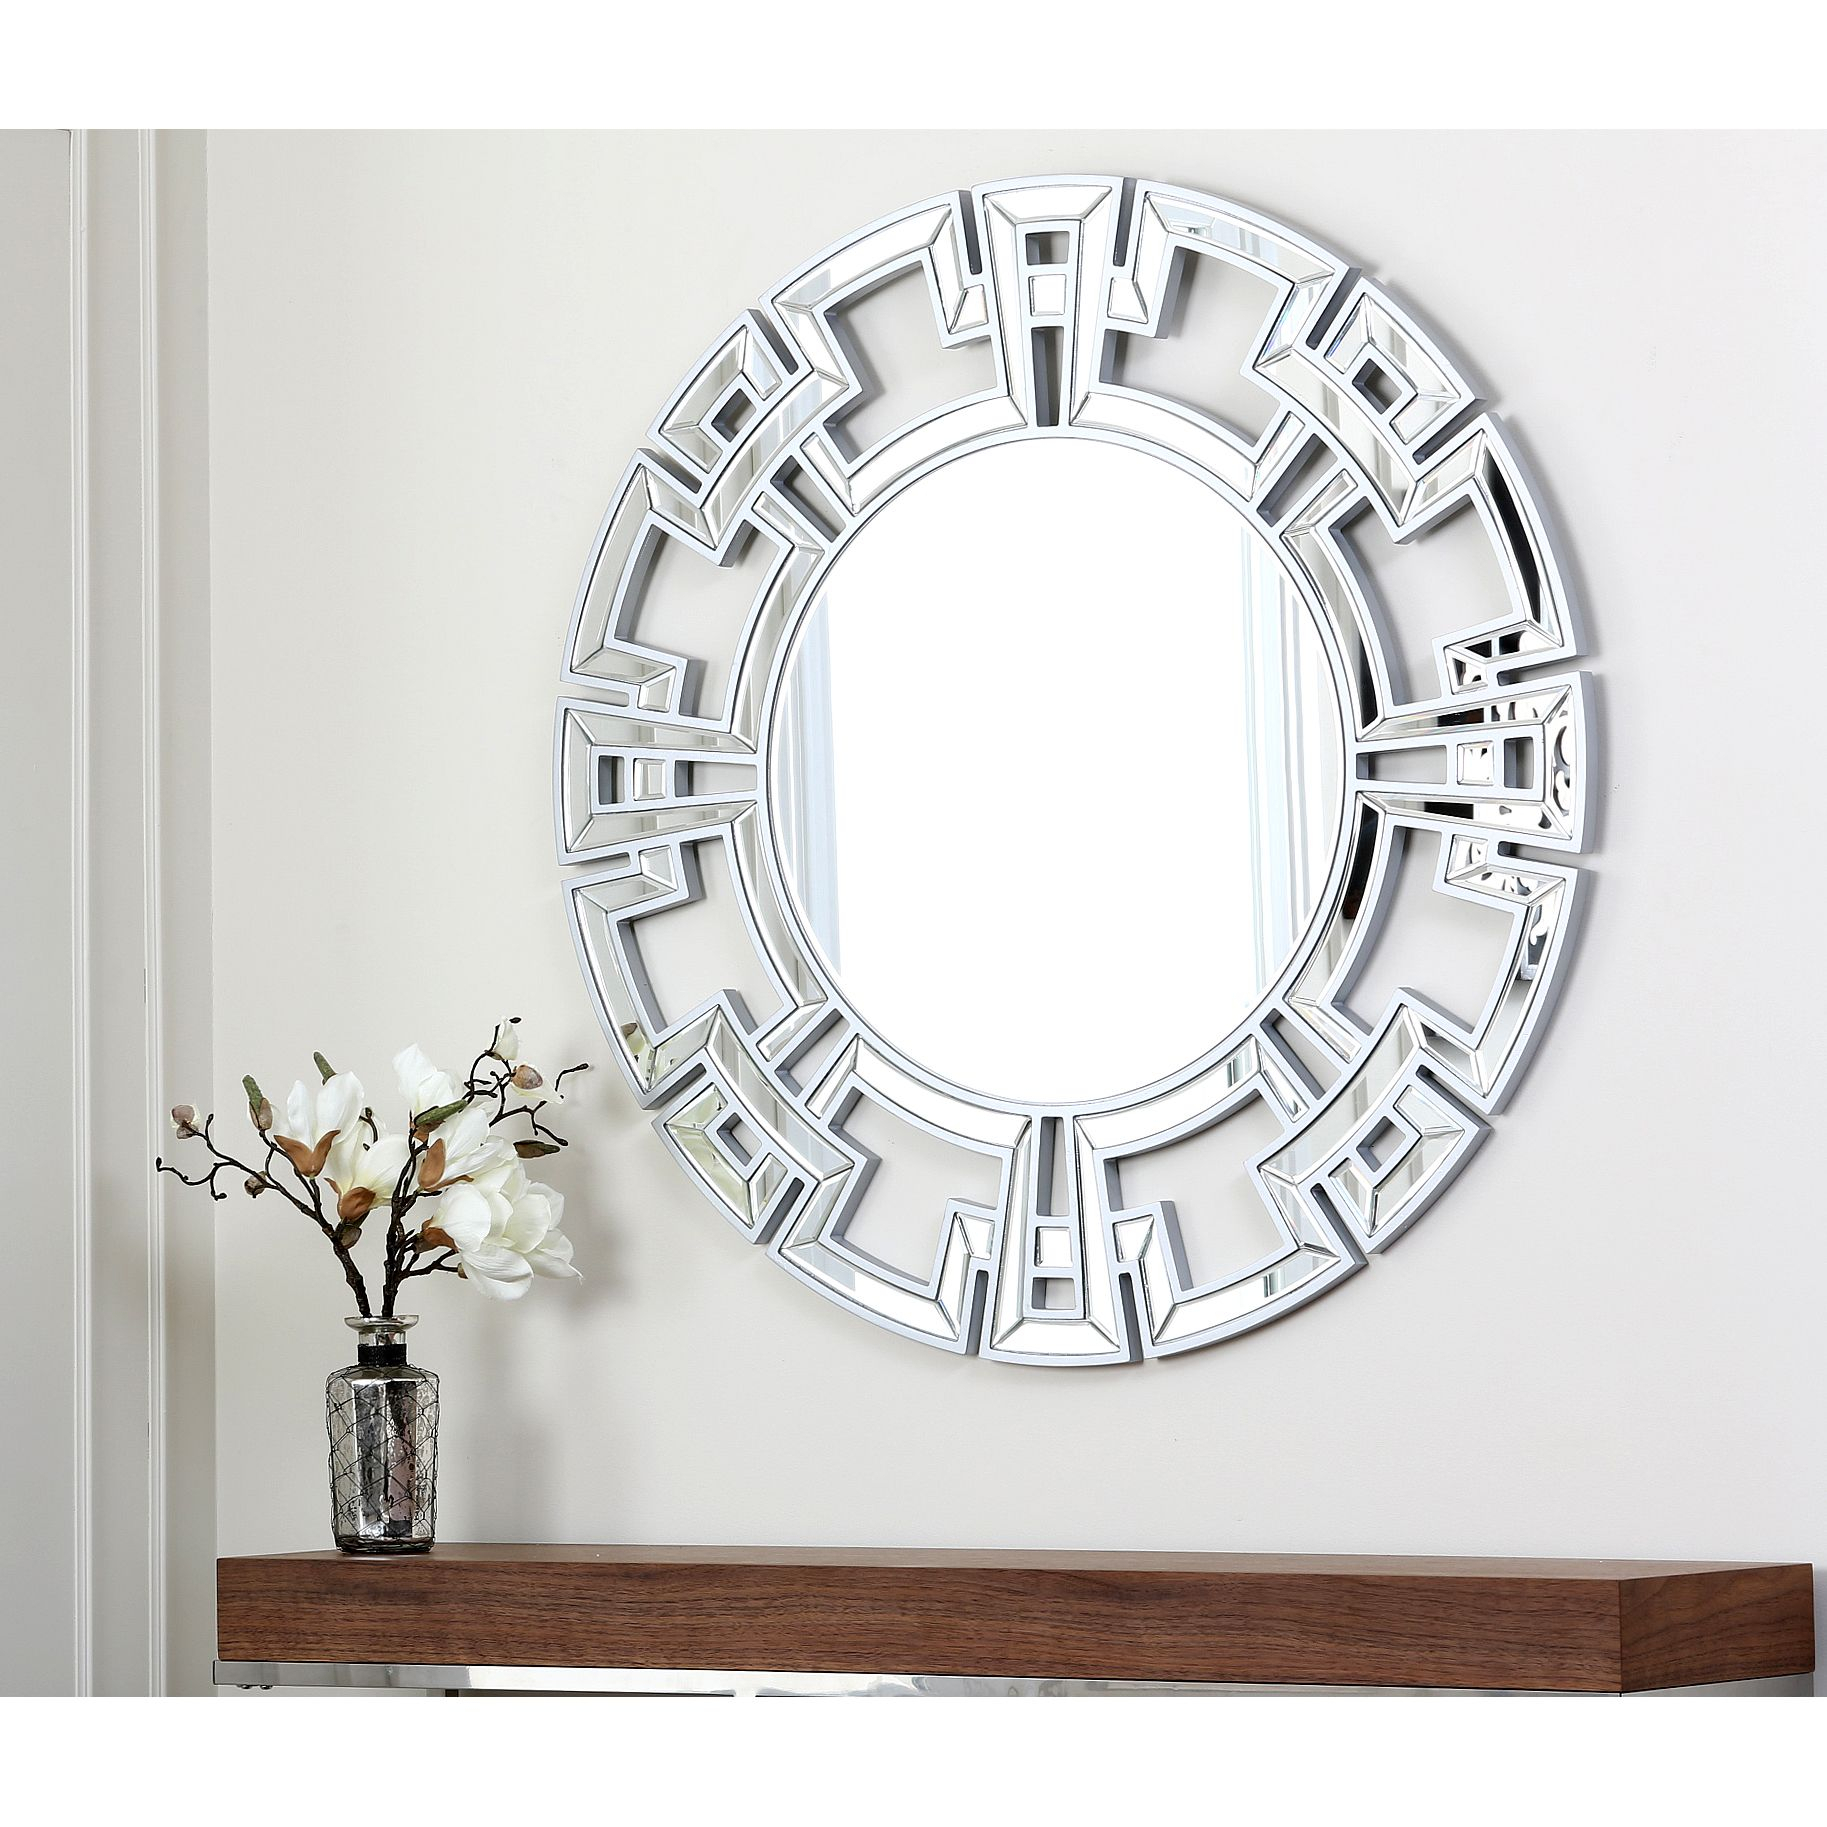 Grace Your Wall With This Round Wall Mirror From Abbyson In Caja Rectangle Glass Frame Wall Mirrors (View 15 of 30)